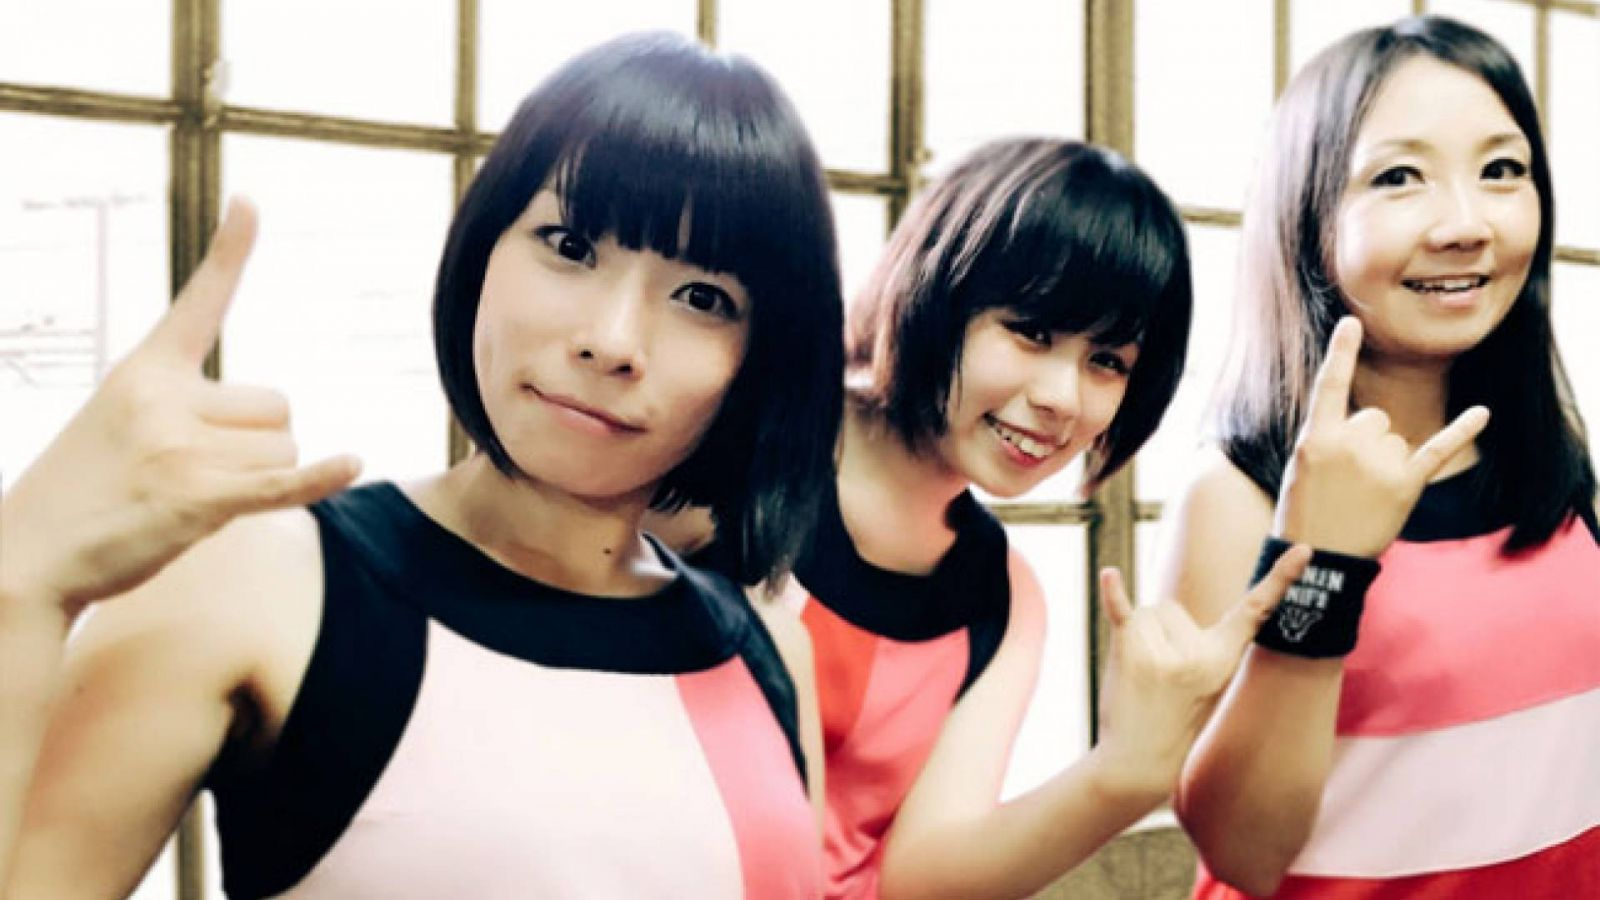 Shonen Knife © Shonen Knife. All rights reserved.